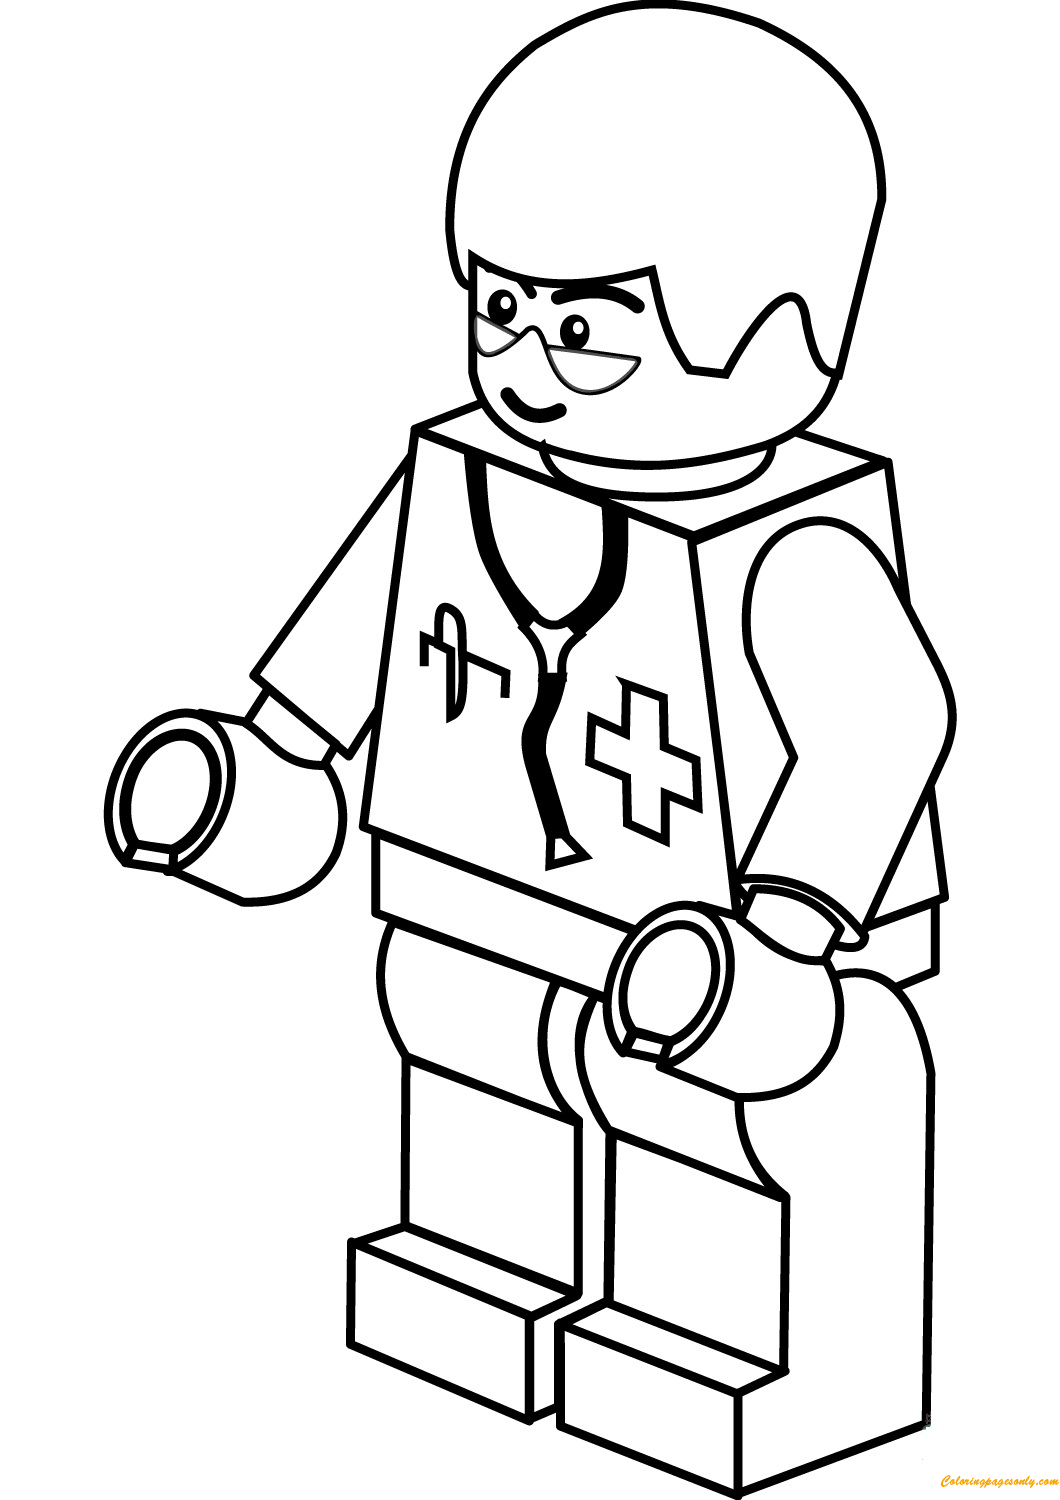 Lego City Doctor Coloring Page Free Coloring Pages Online